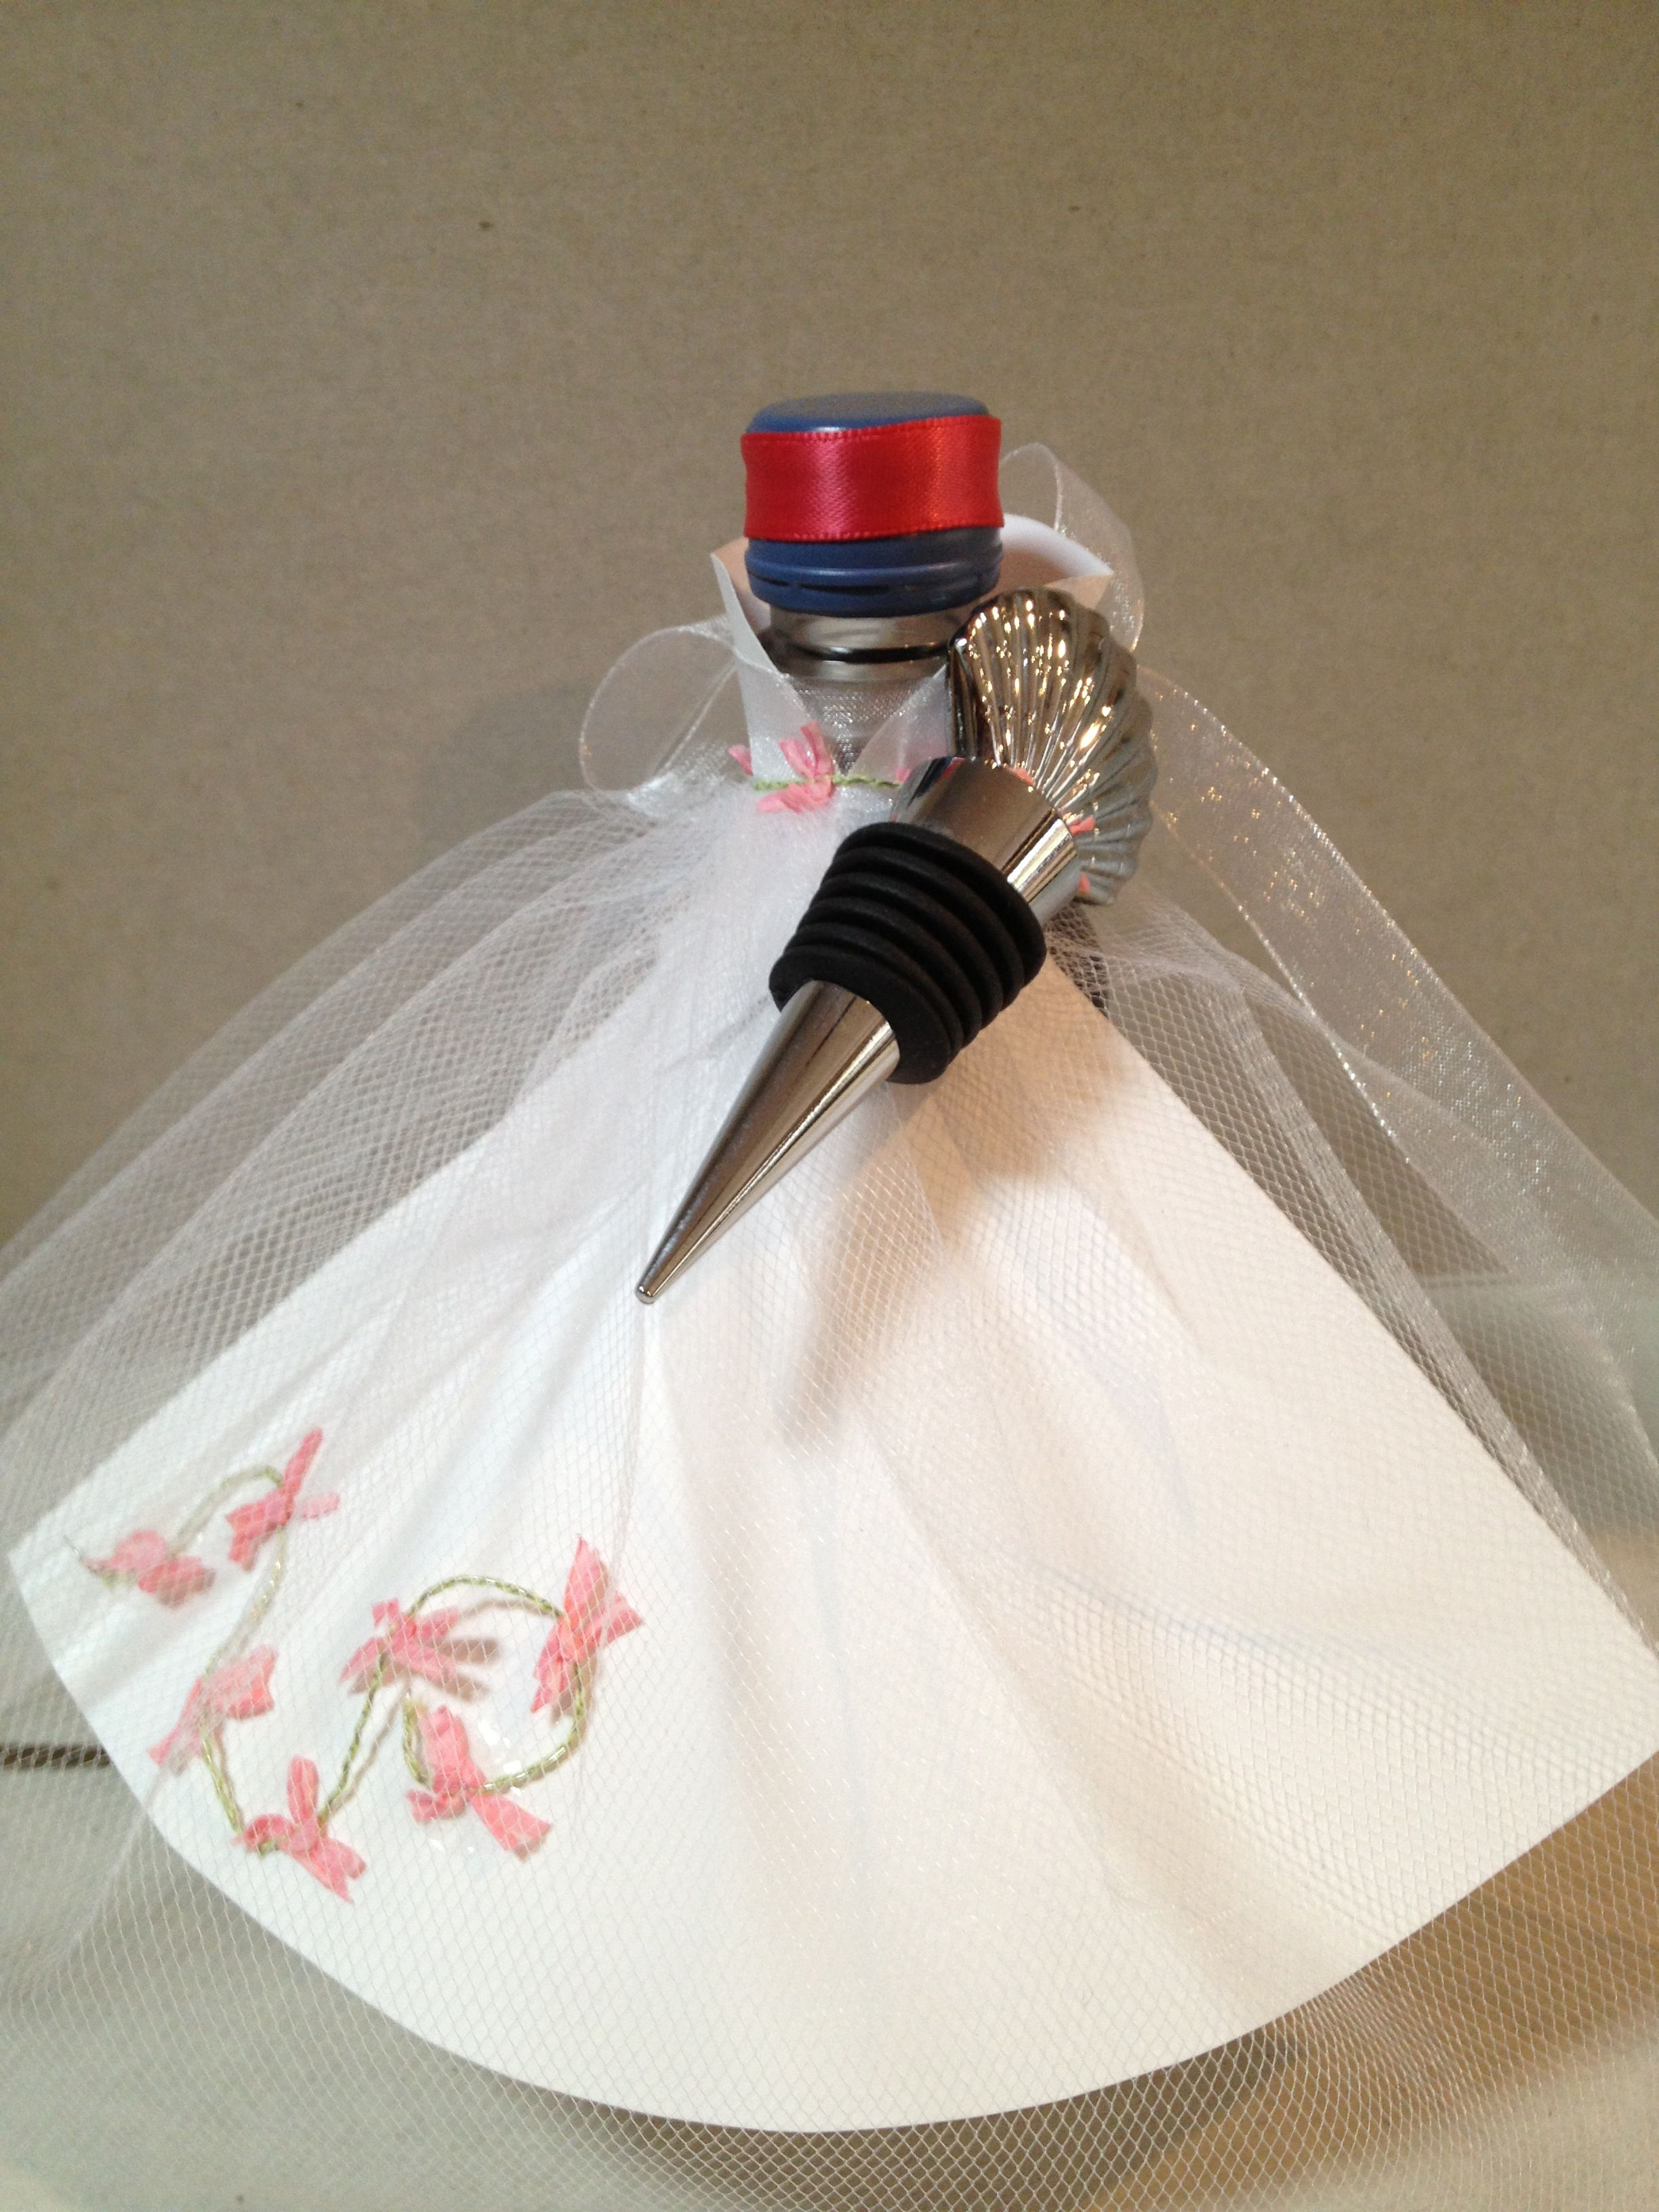 Wedding shower favor made with small wine